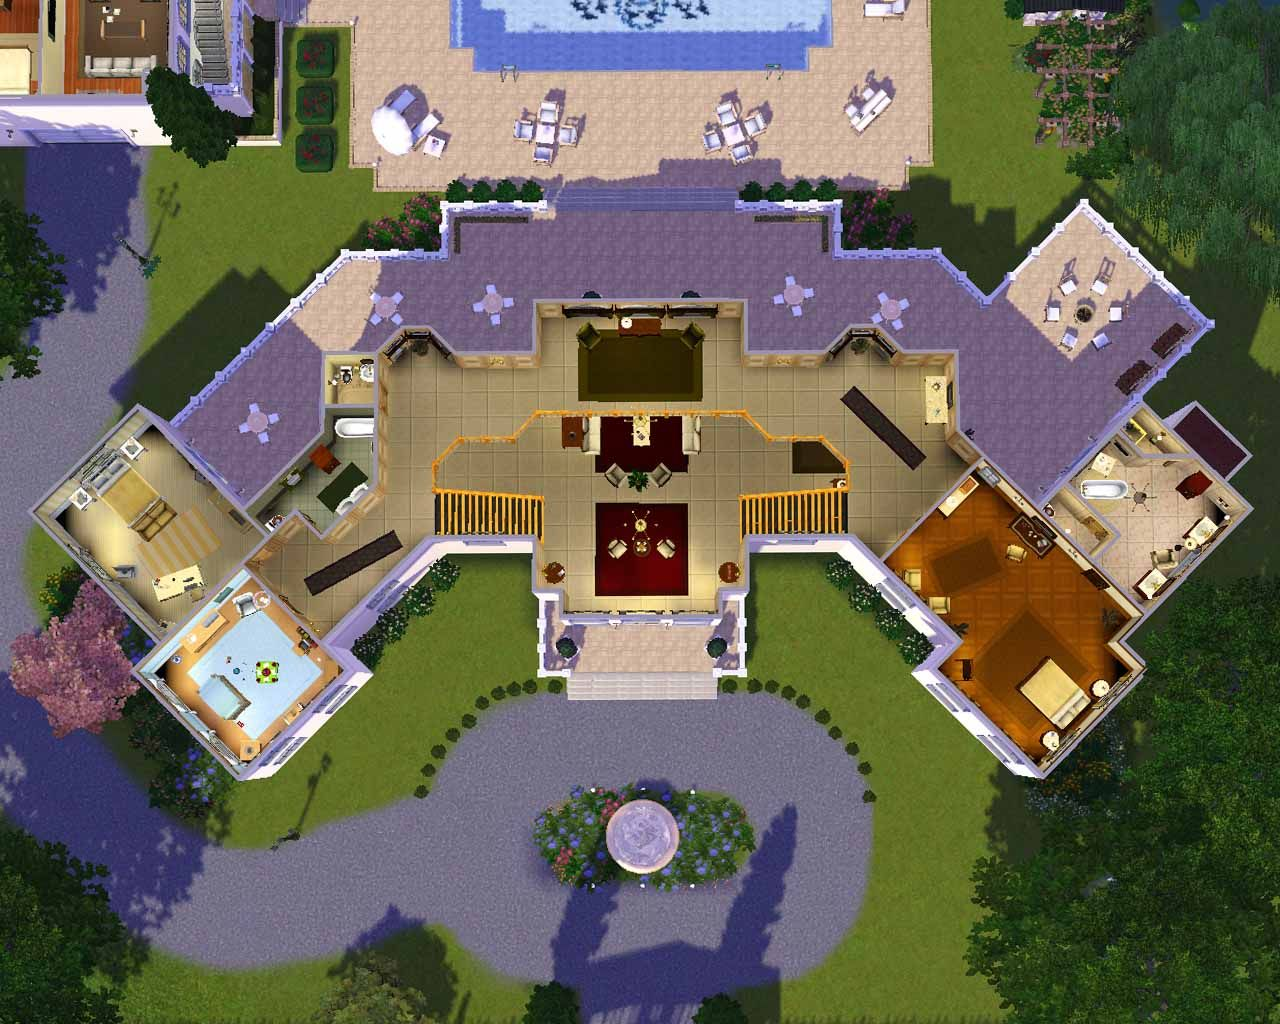 The Sims 3 House Designs Google Search House Plans Mansion Mansions Sims House Plans